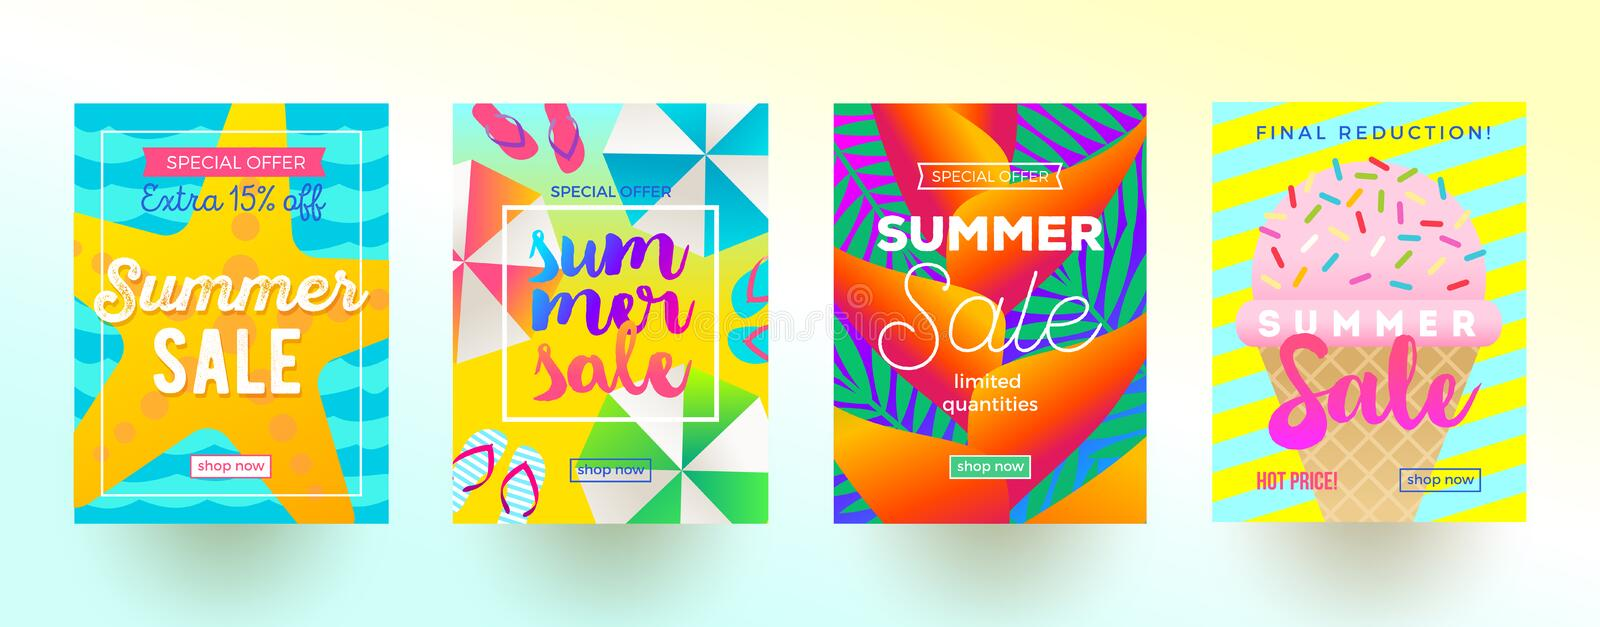 Set of summer sale promotion banners. Vacation, holidays and travel colorful bright background. Poster or newsletter design. Vector illustration vector illustration